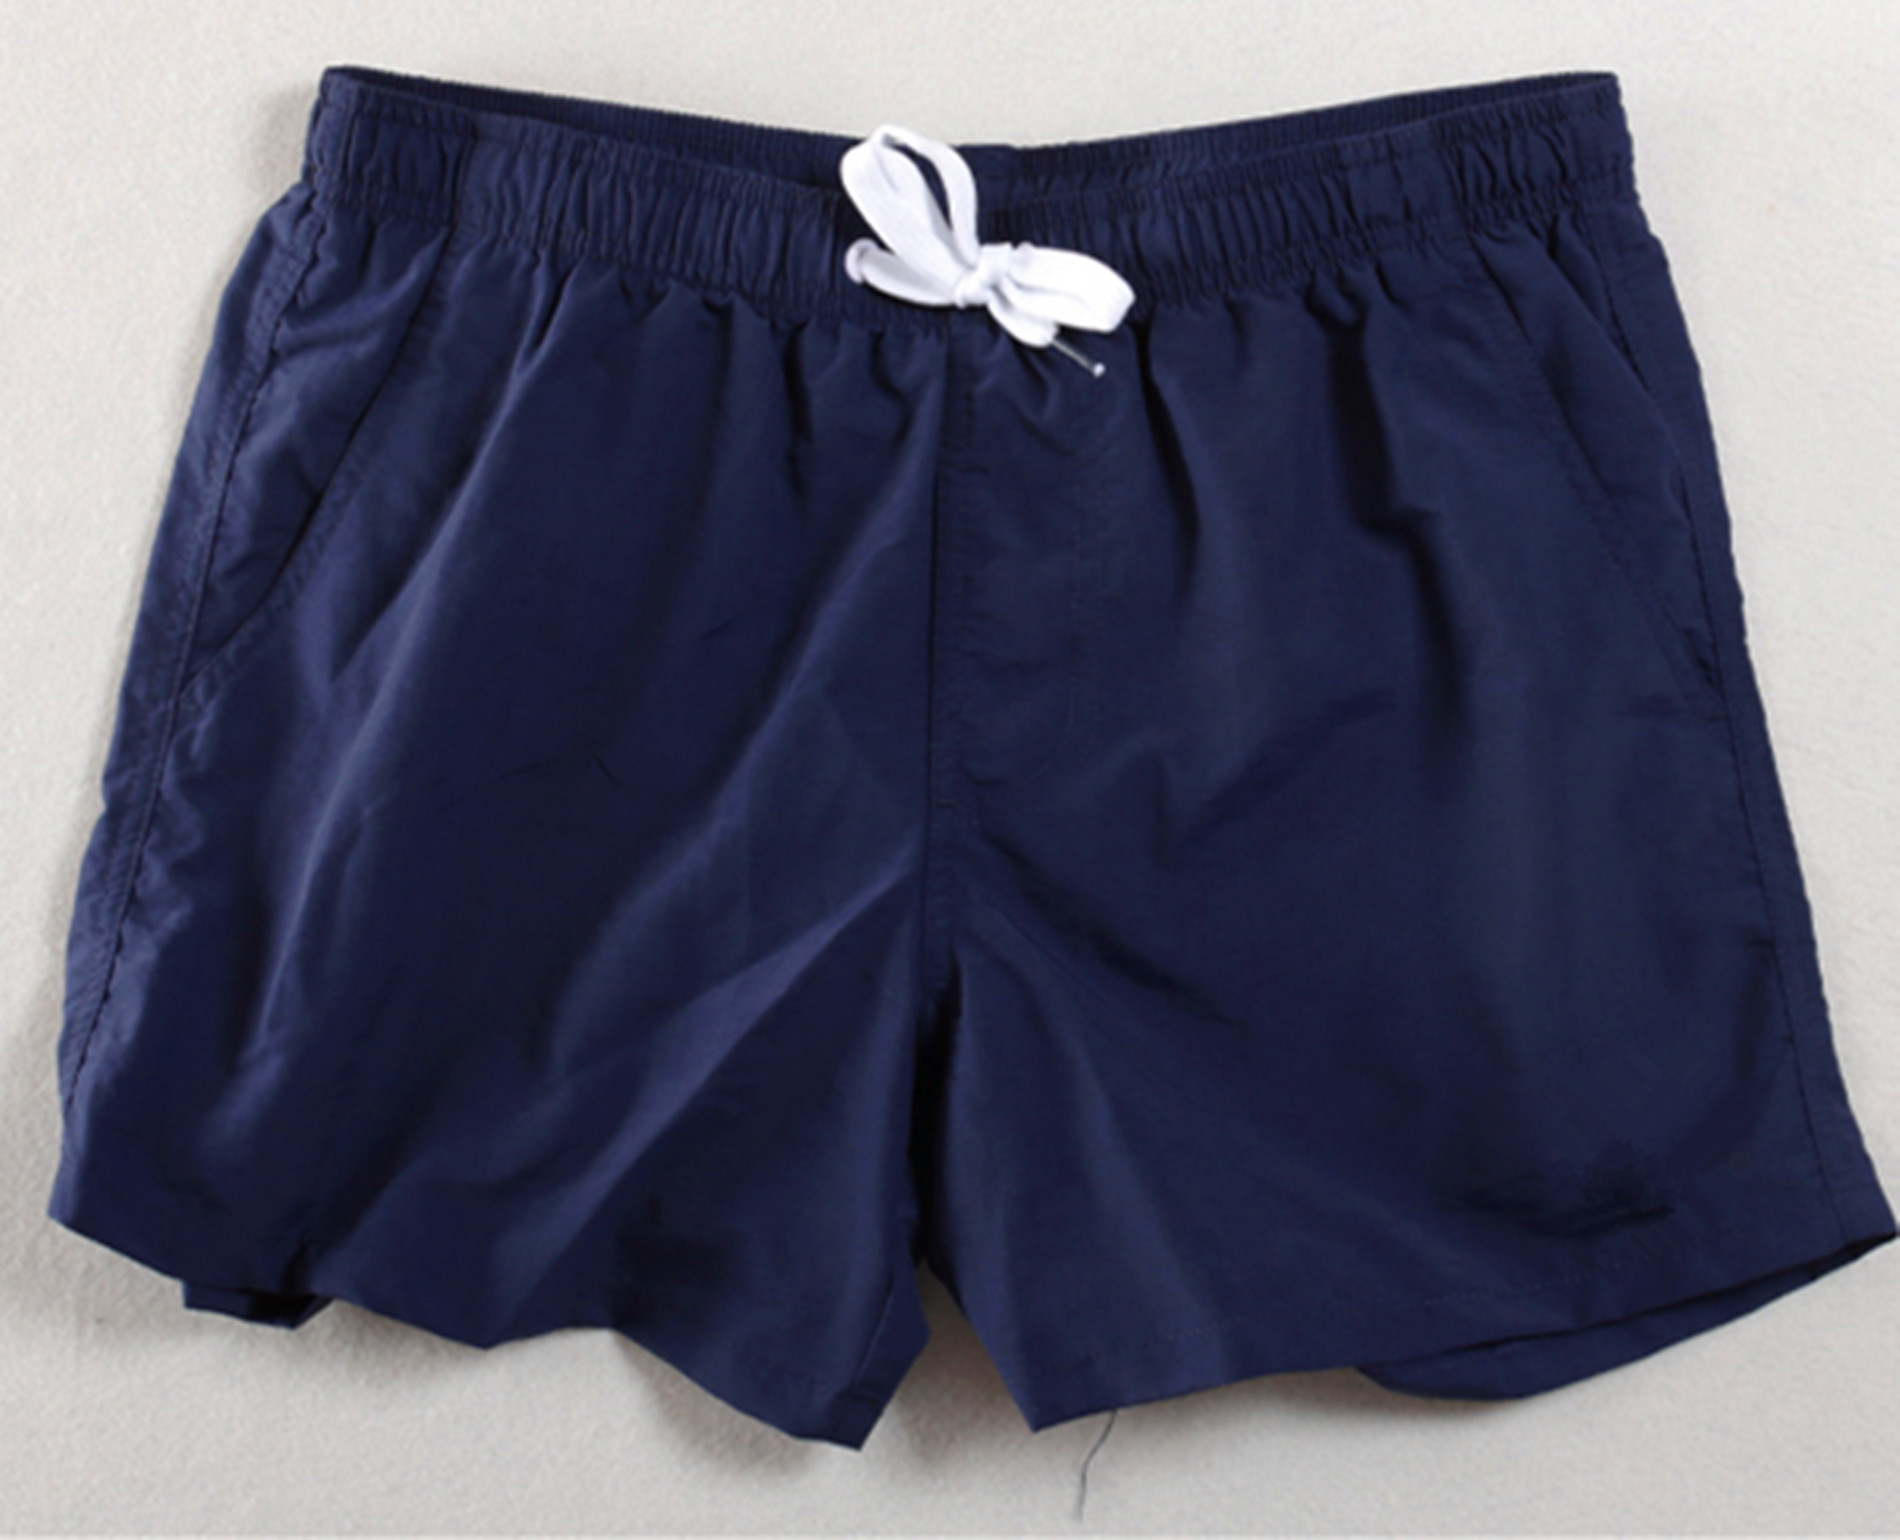 Summer Outdoor Sports Thin Breathable Double Layer Moisture Wicking Beach Shorts